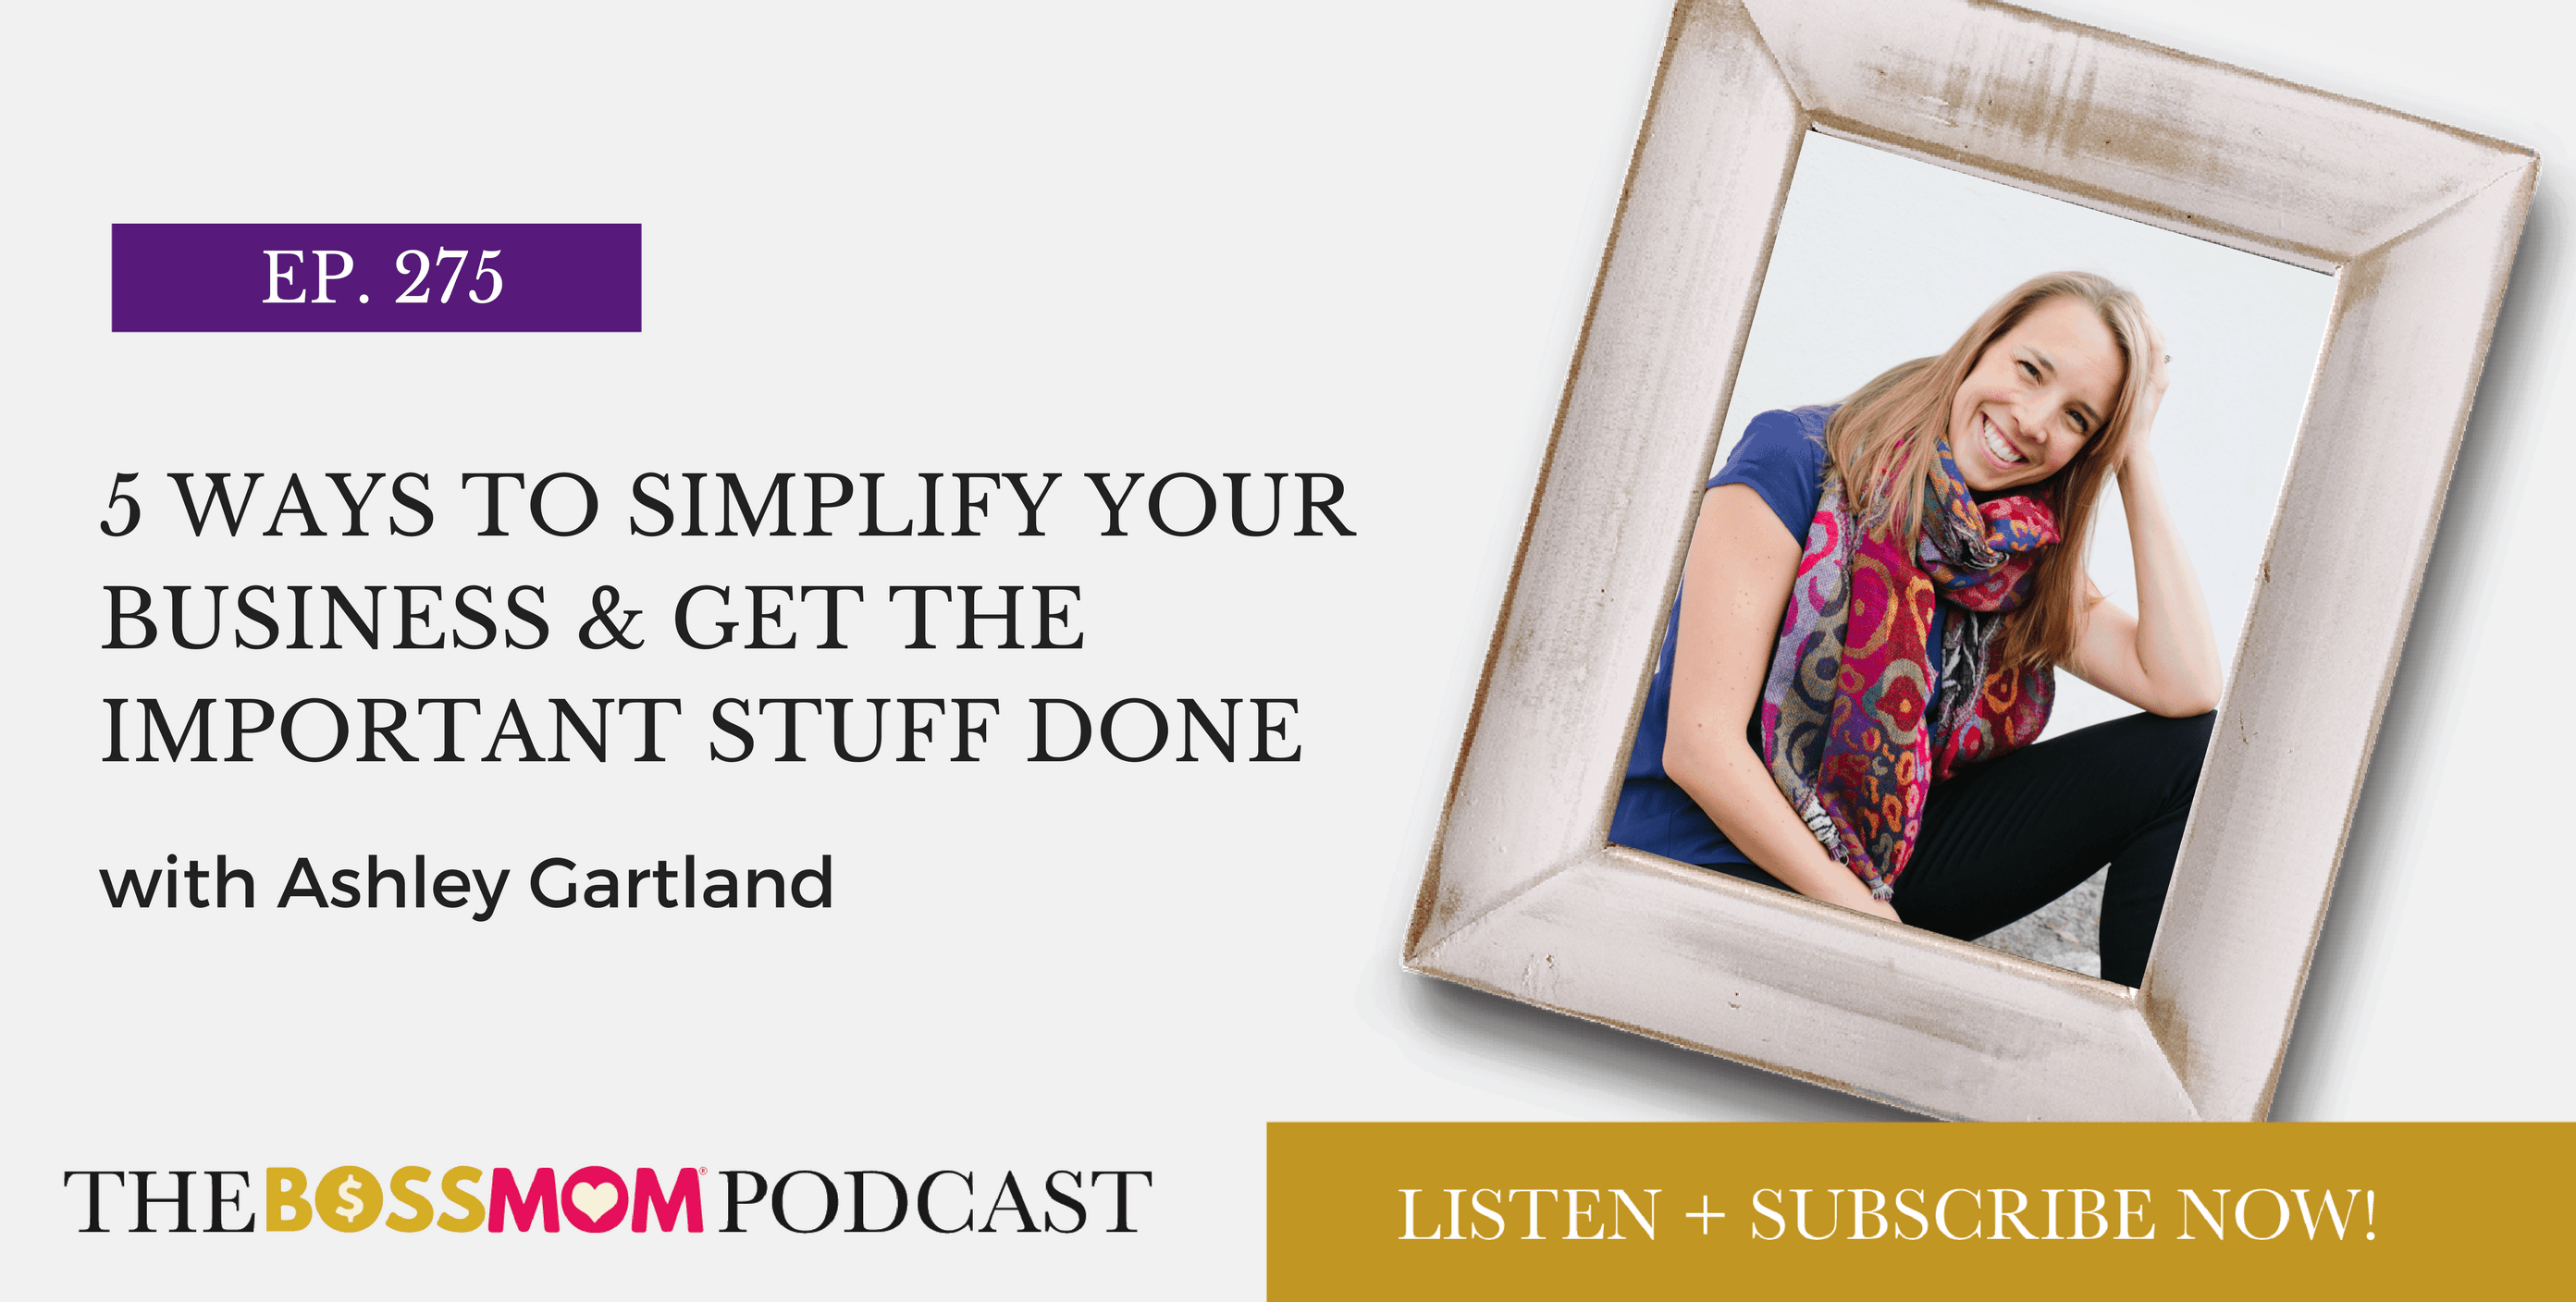 Episode 275: 5 Ways to Simplify Your Business & Get the Important Stuff Done with Ashley Gartland